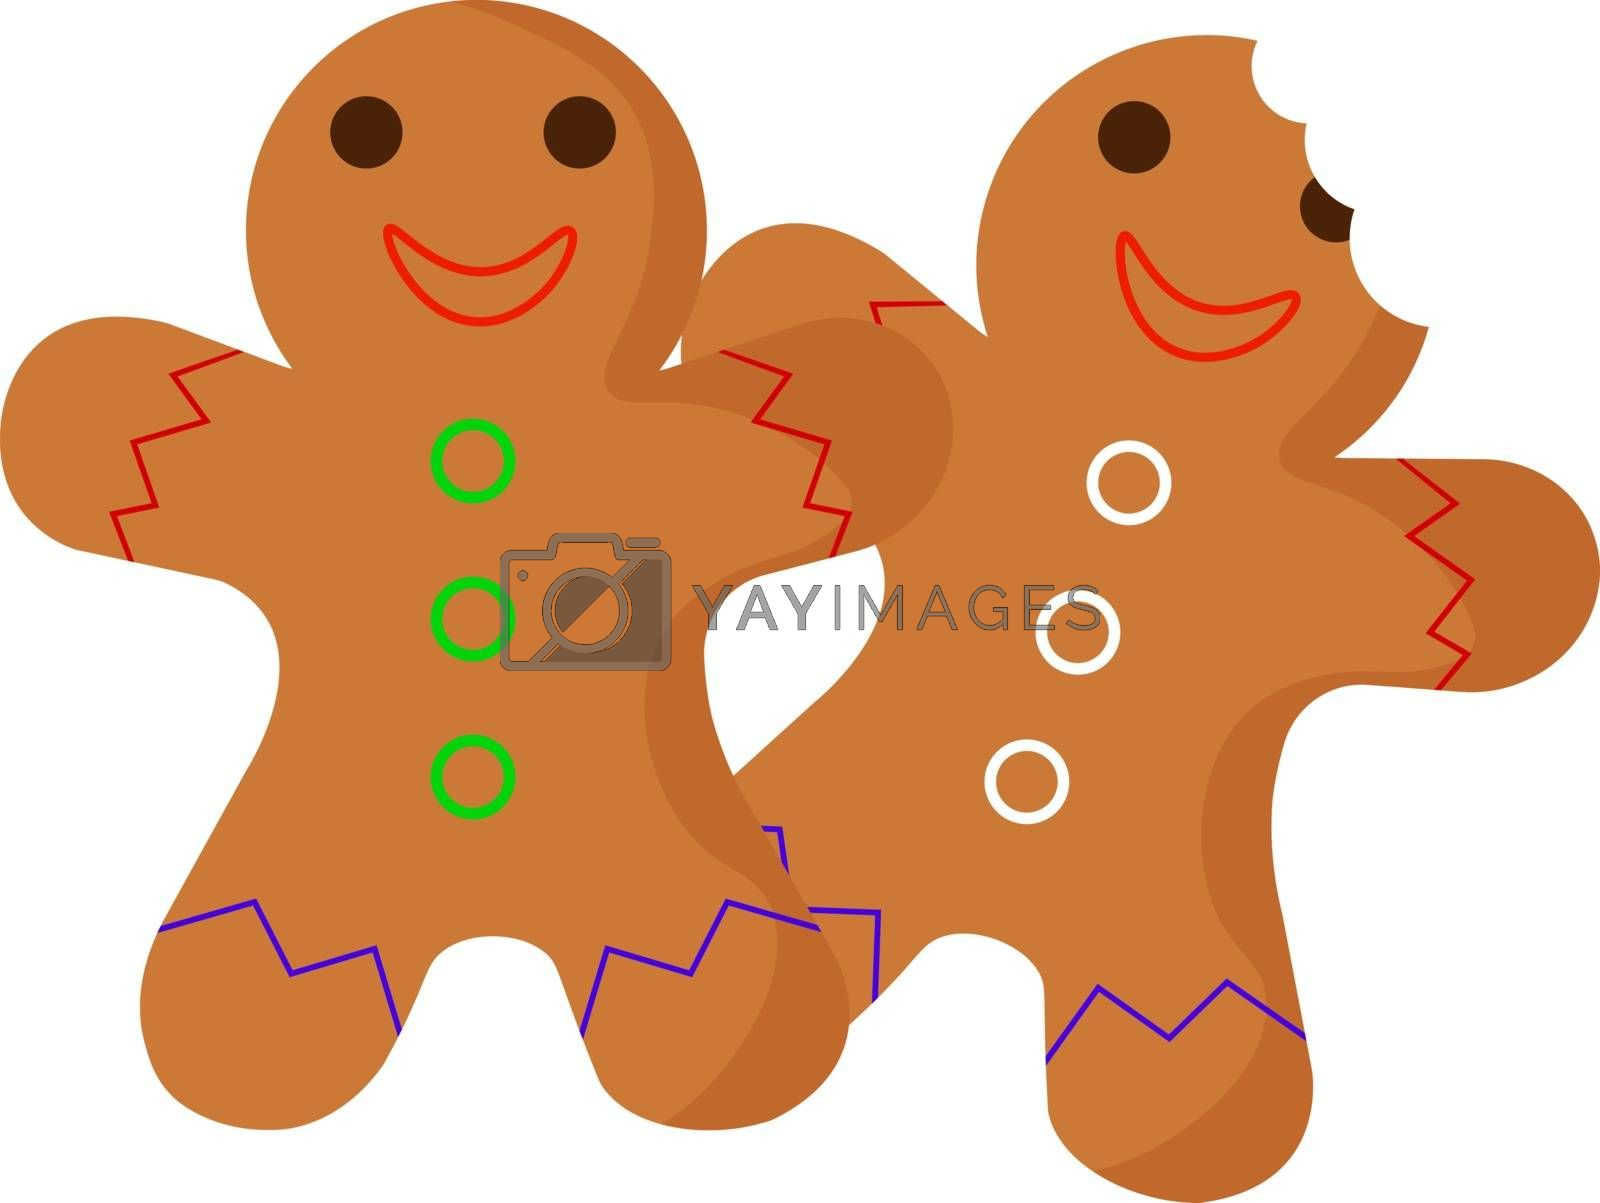 Sugar cookies, illustration, vector on white background.